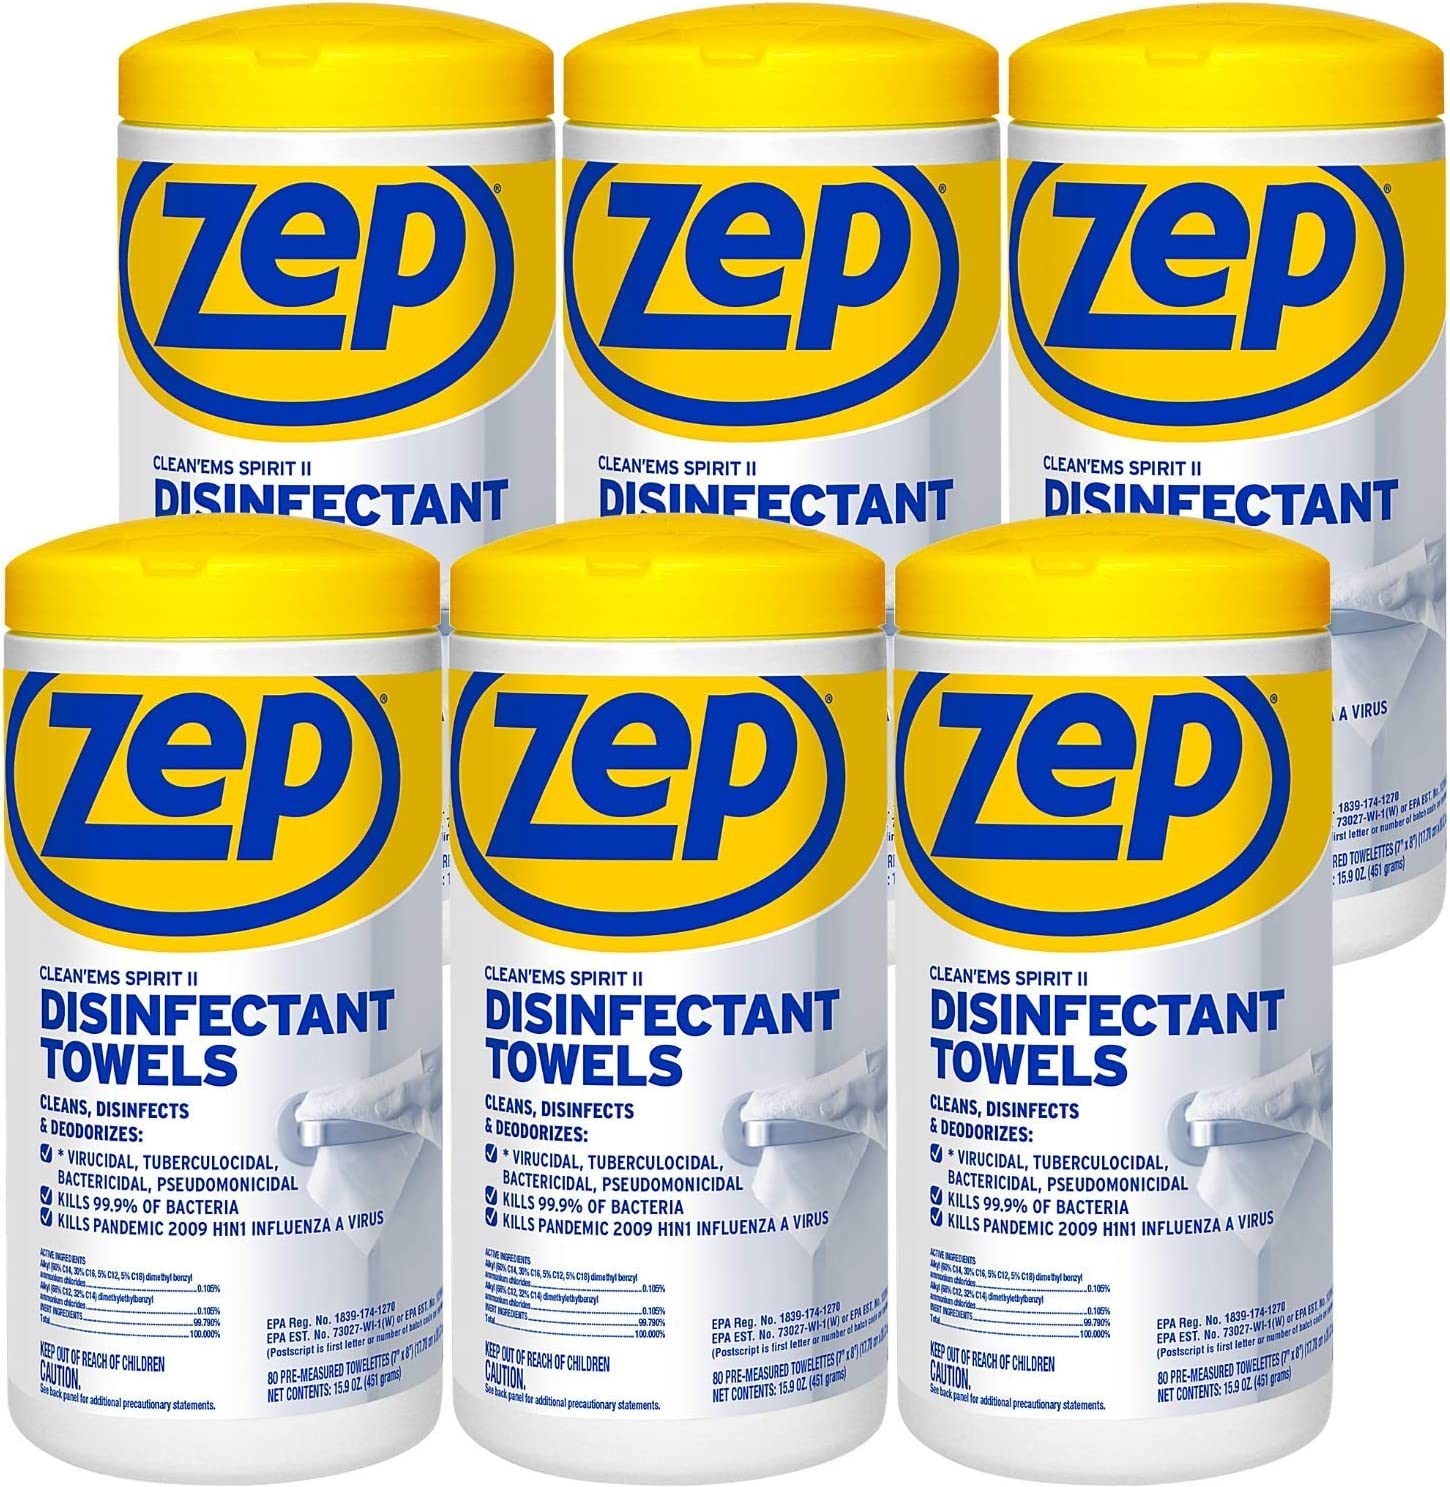 Zep Spirit II Disinfectant and Sanitizing Wipes 80 Wipes Per Container Case of 6 EPA Registered Kills 99.9% of Germs (R53380)